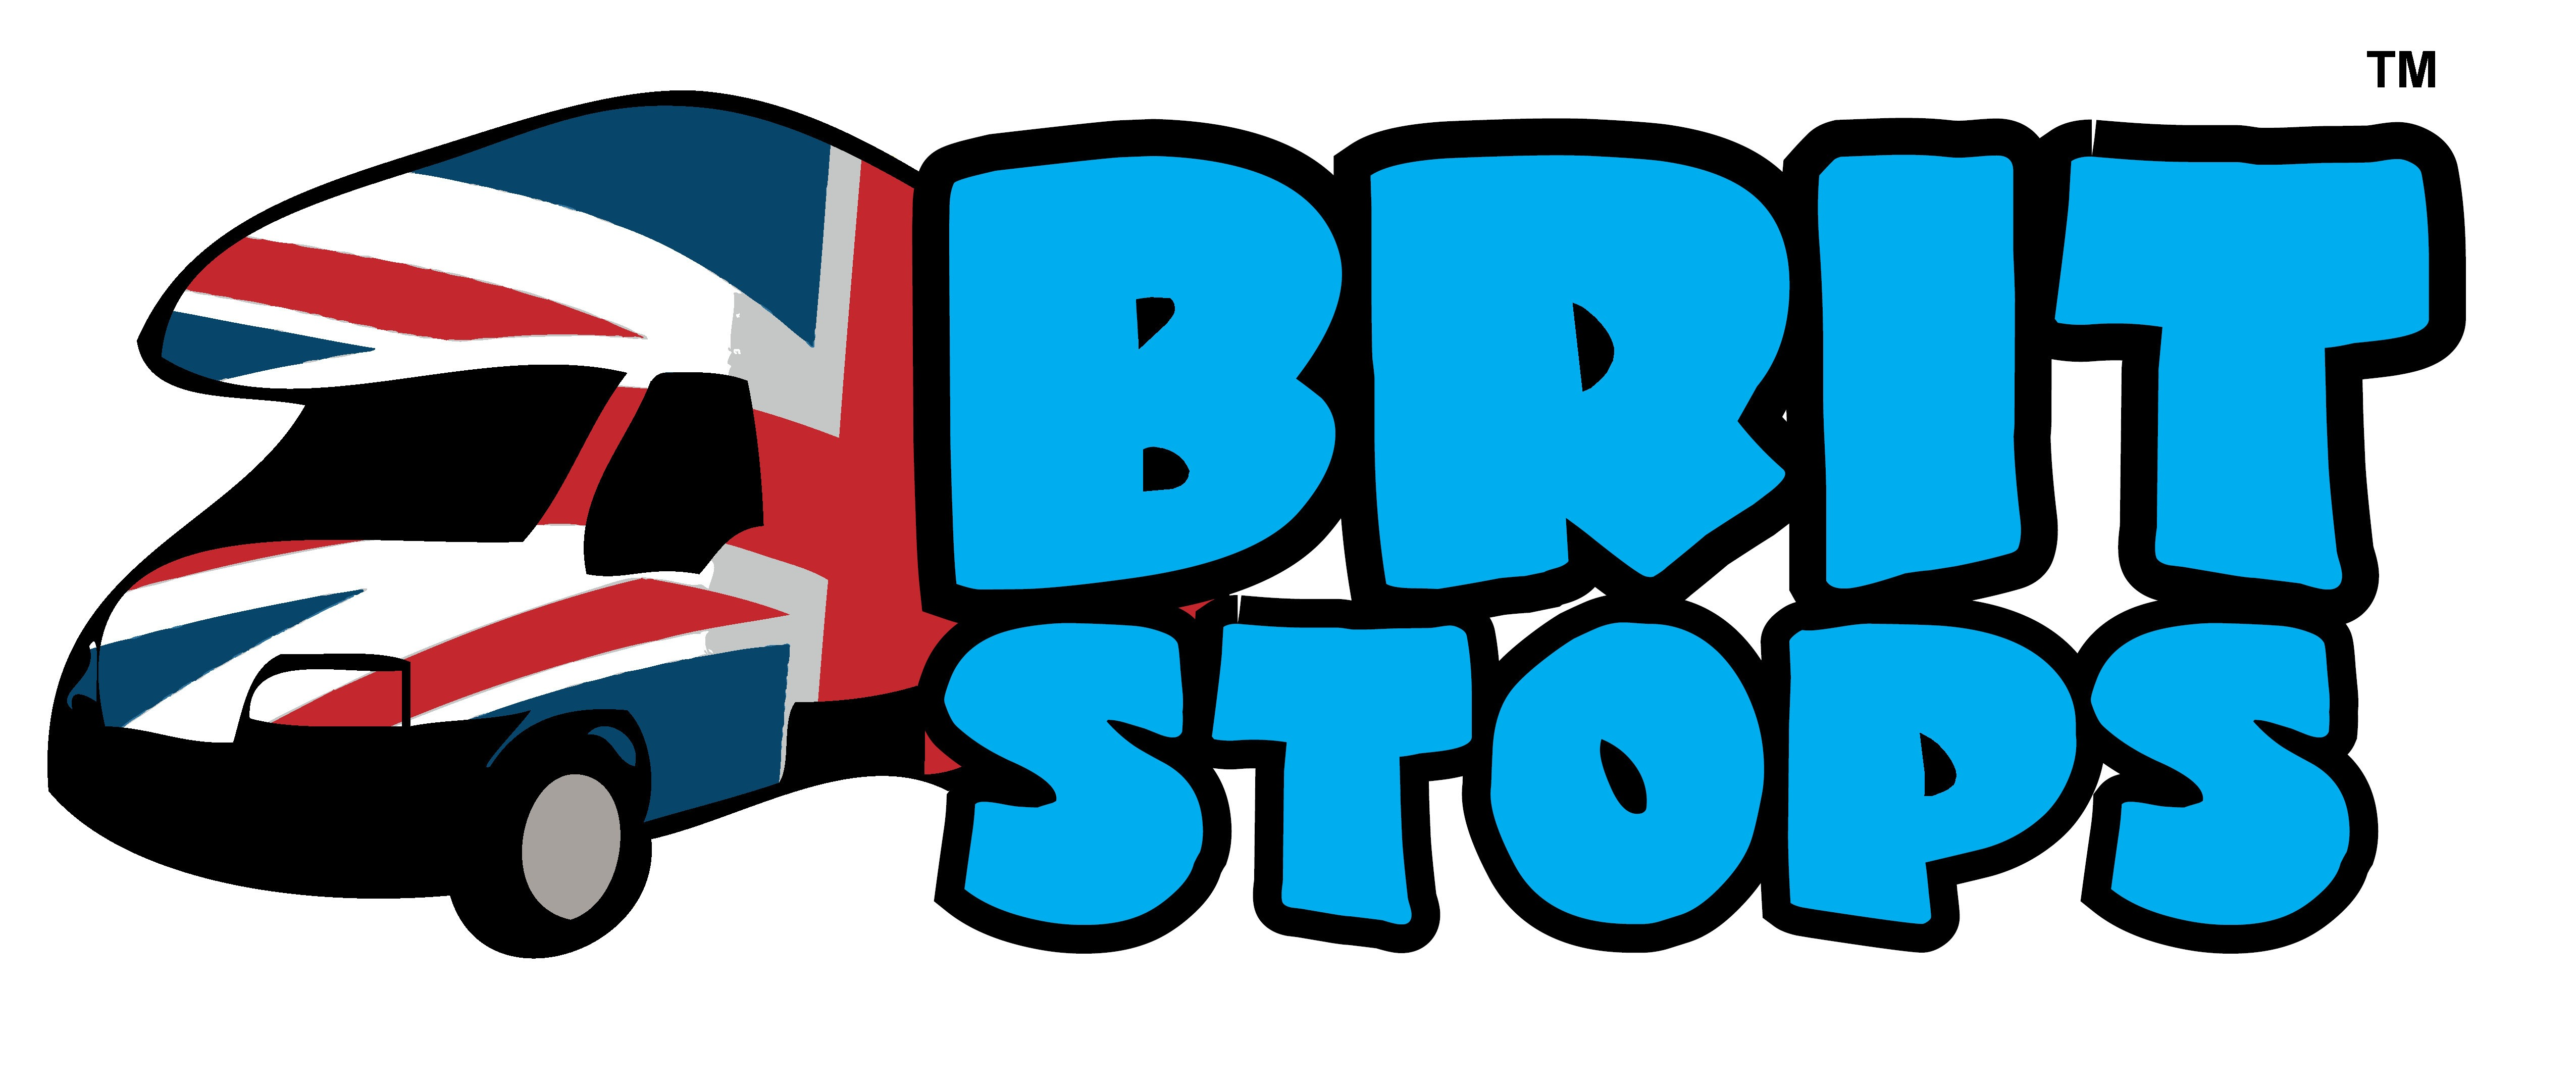 We're members of Brit Stops  - click the link for more info.